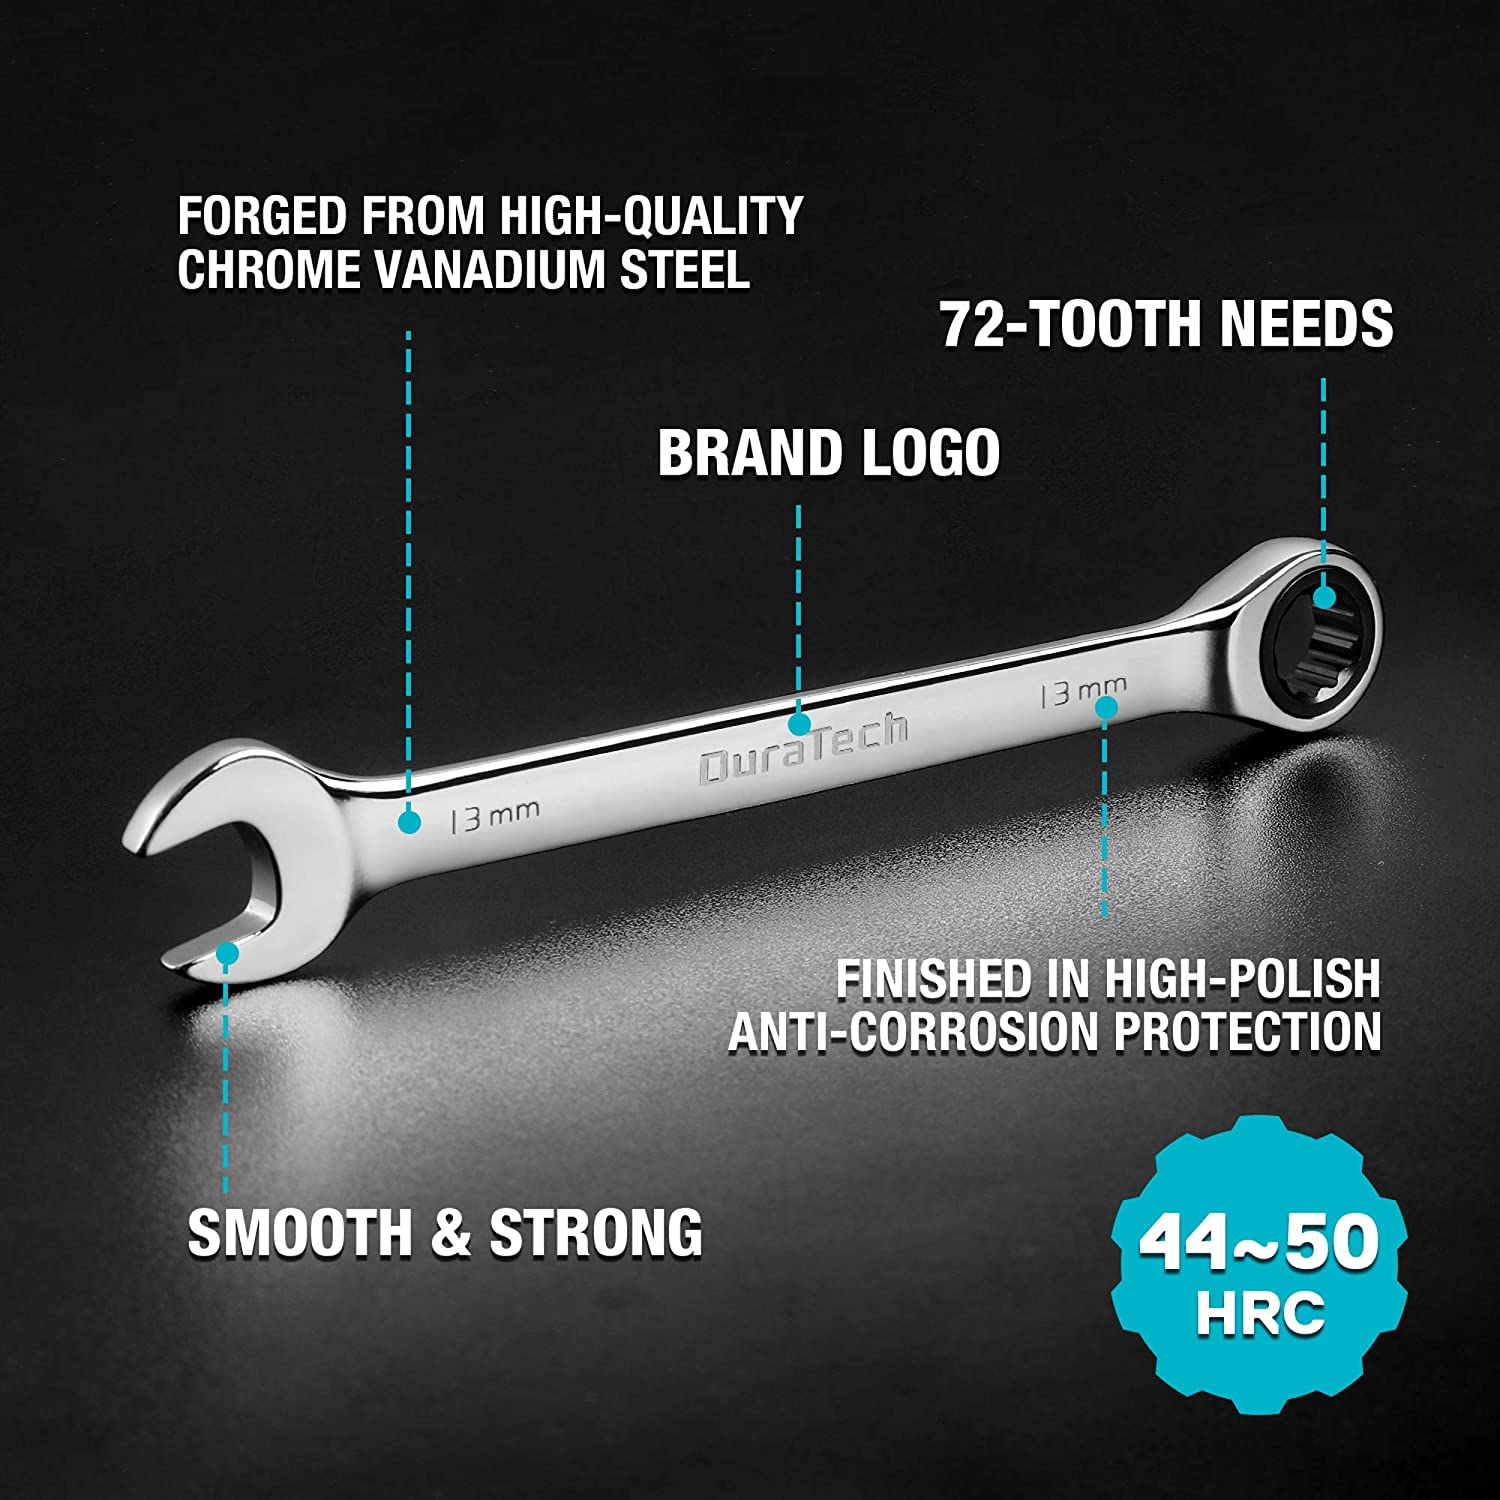 10-piece 6-18mm with Carrying Bag DURATECH Ratcheting Combination Wrench Set Chrome Vanadium Steel Metric